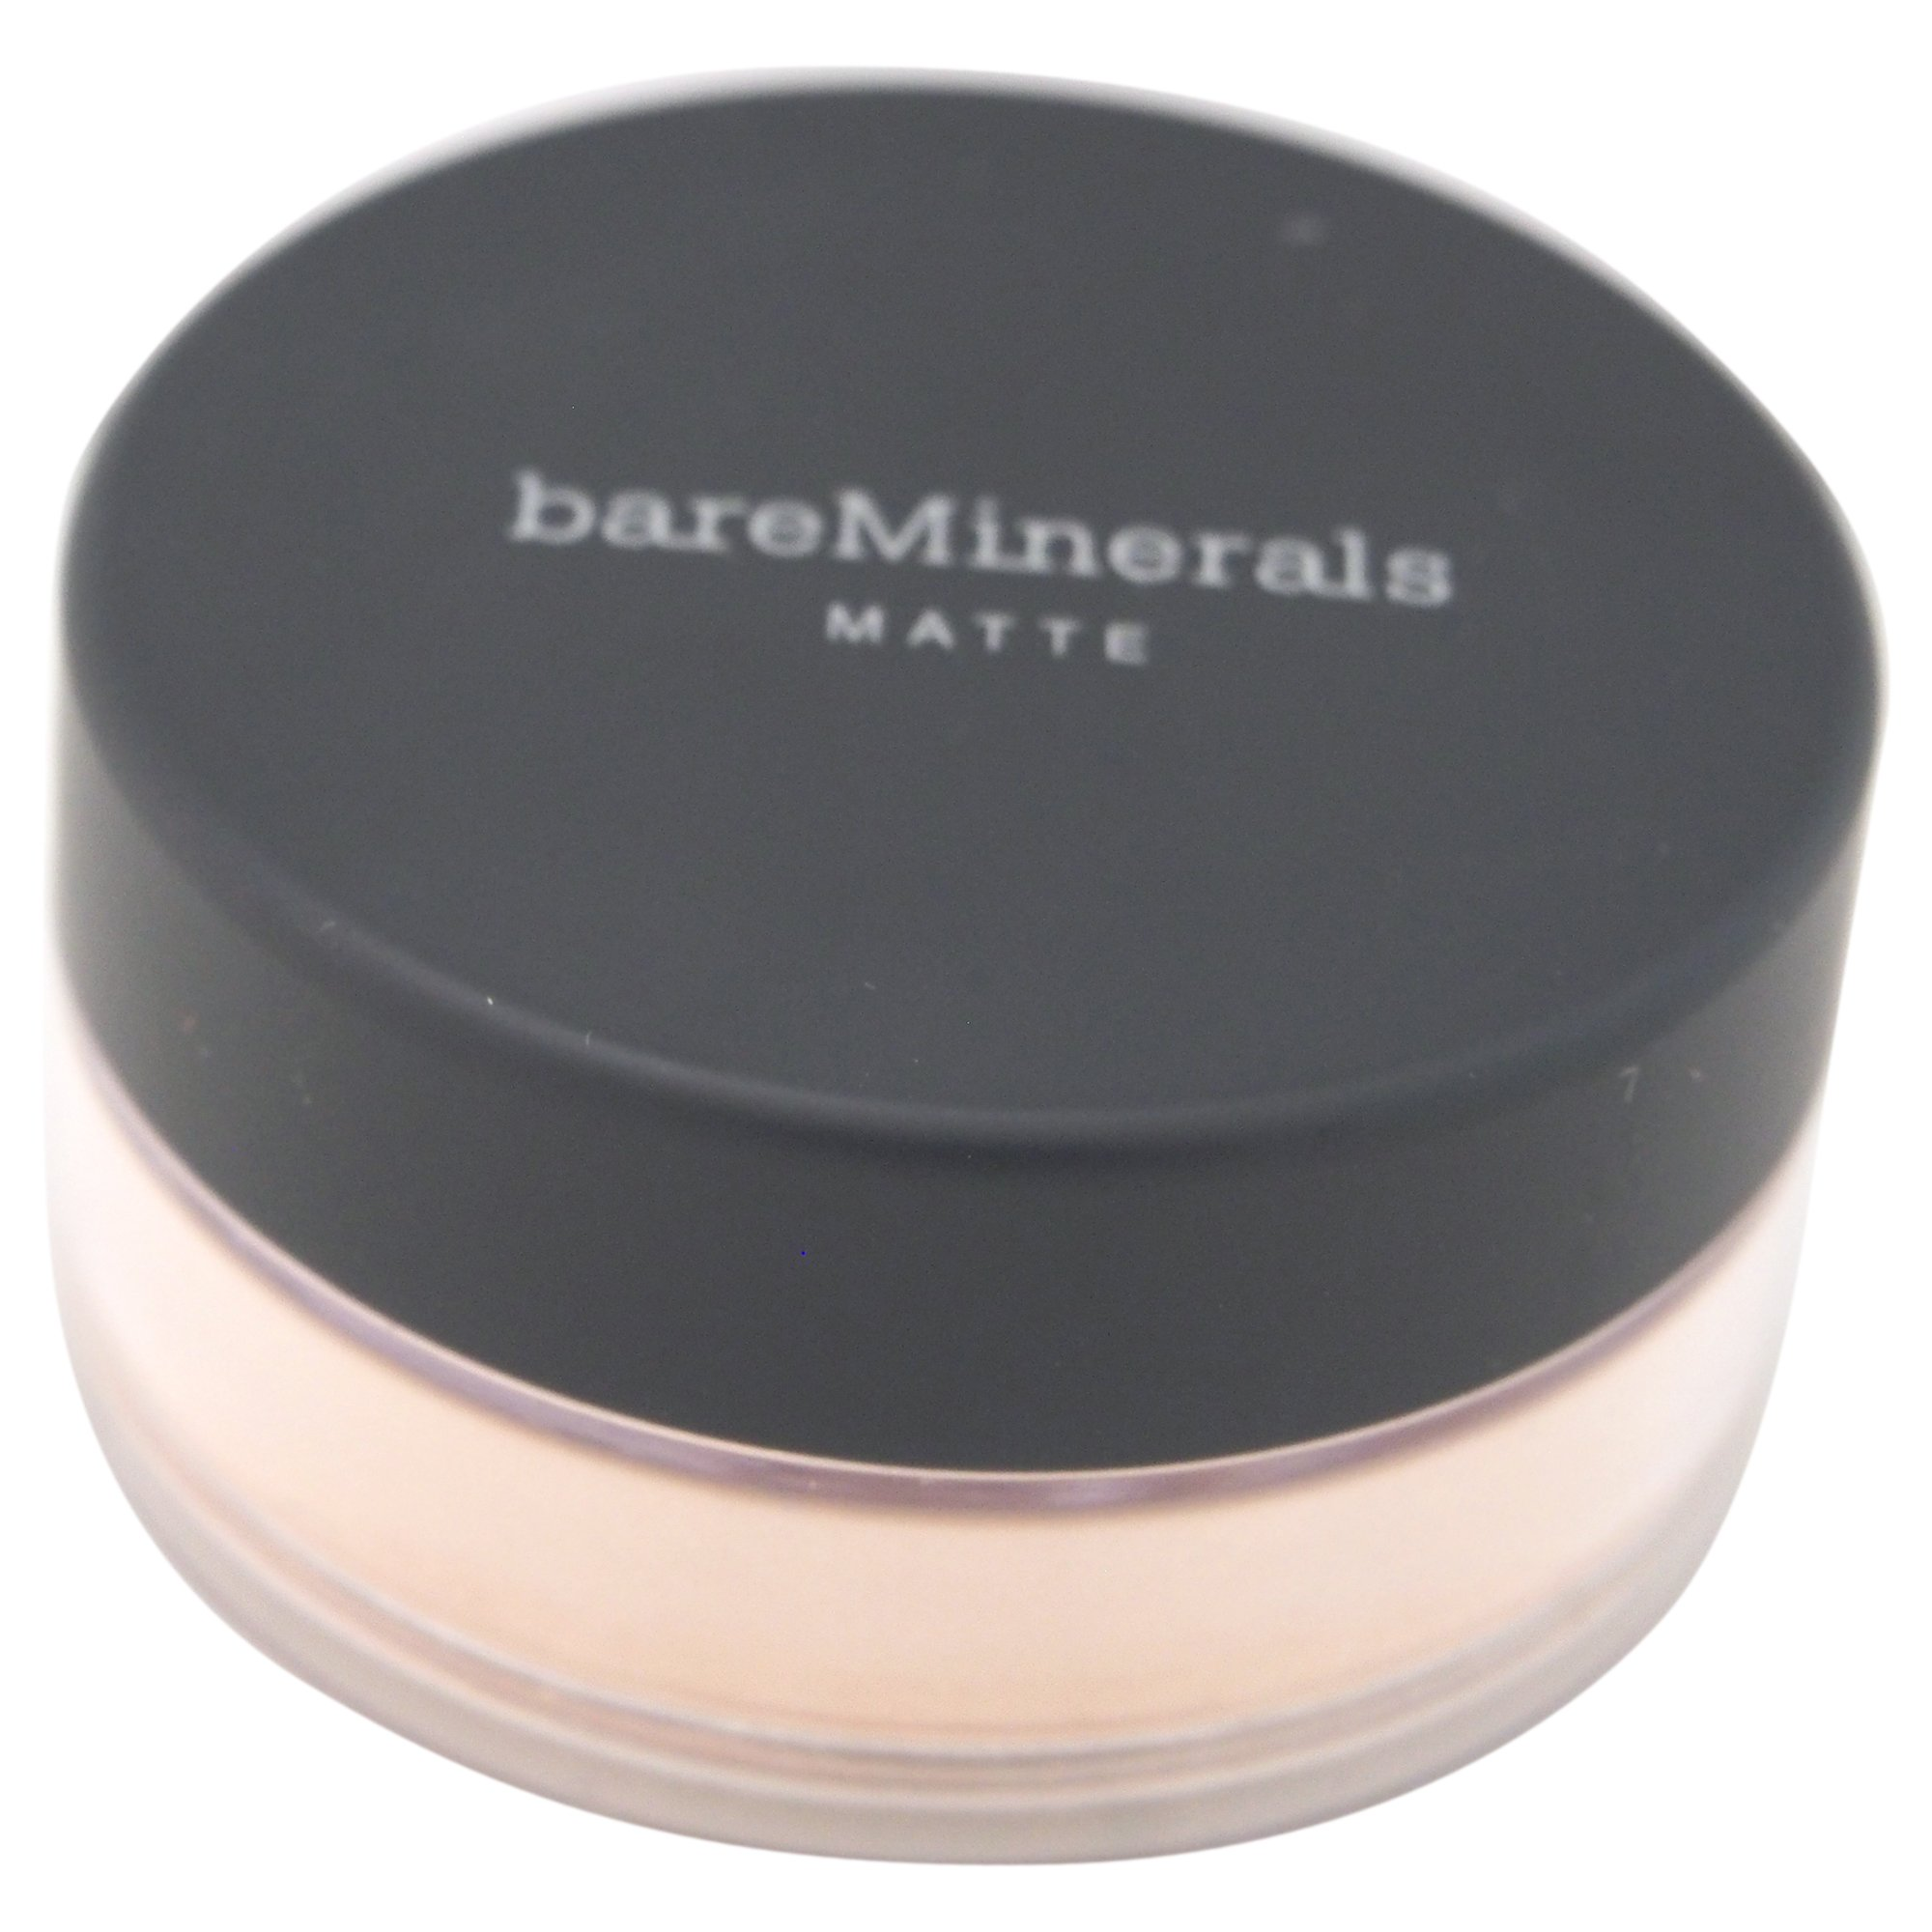 bareMinerals MATTE SPF 15 Foundation, Medium, 0.21 Ounce